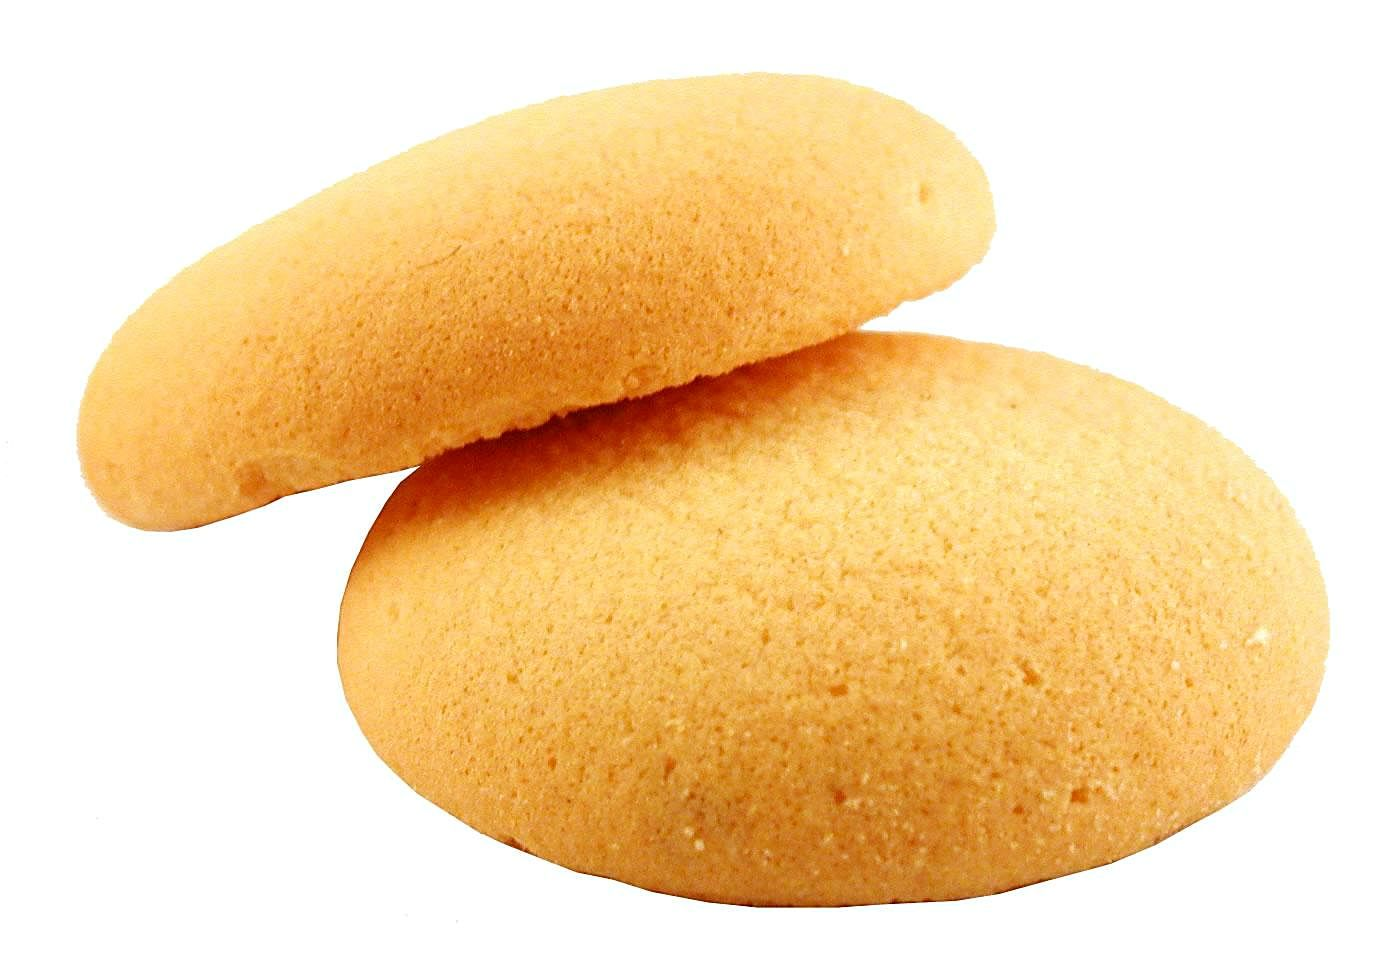 Sugar Free Cakes And Biscuits